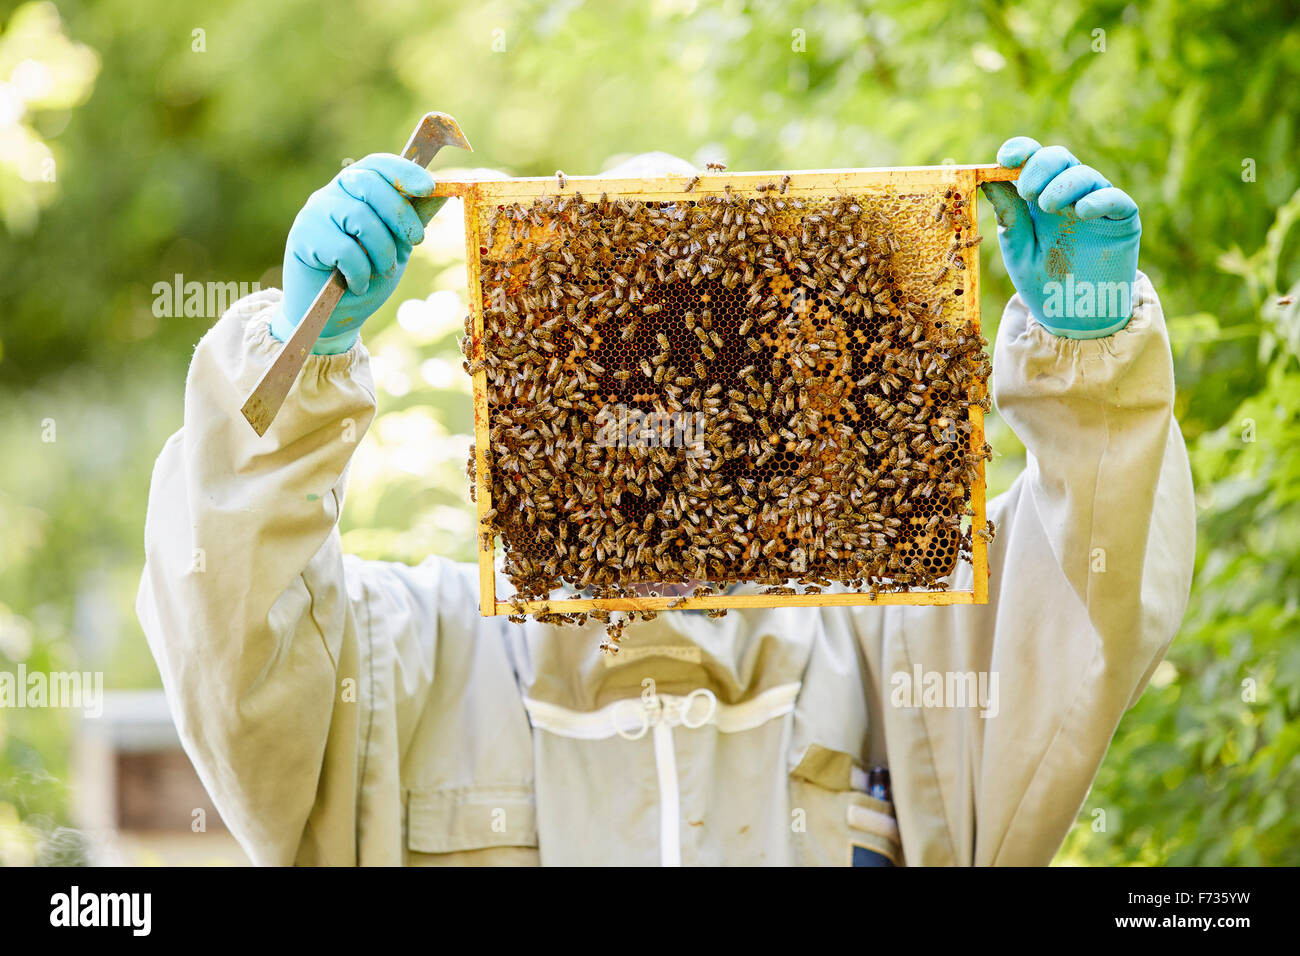 A beekeeper with blue gloves holding up a super or frame full of honey covered in bees. - Stock Image